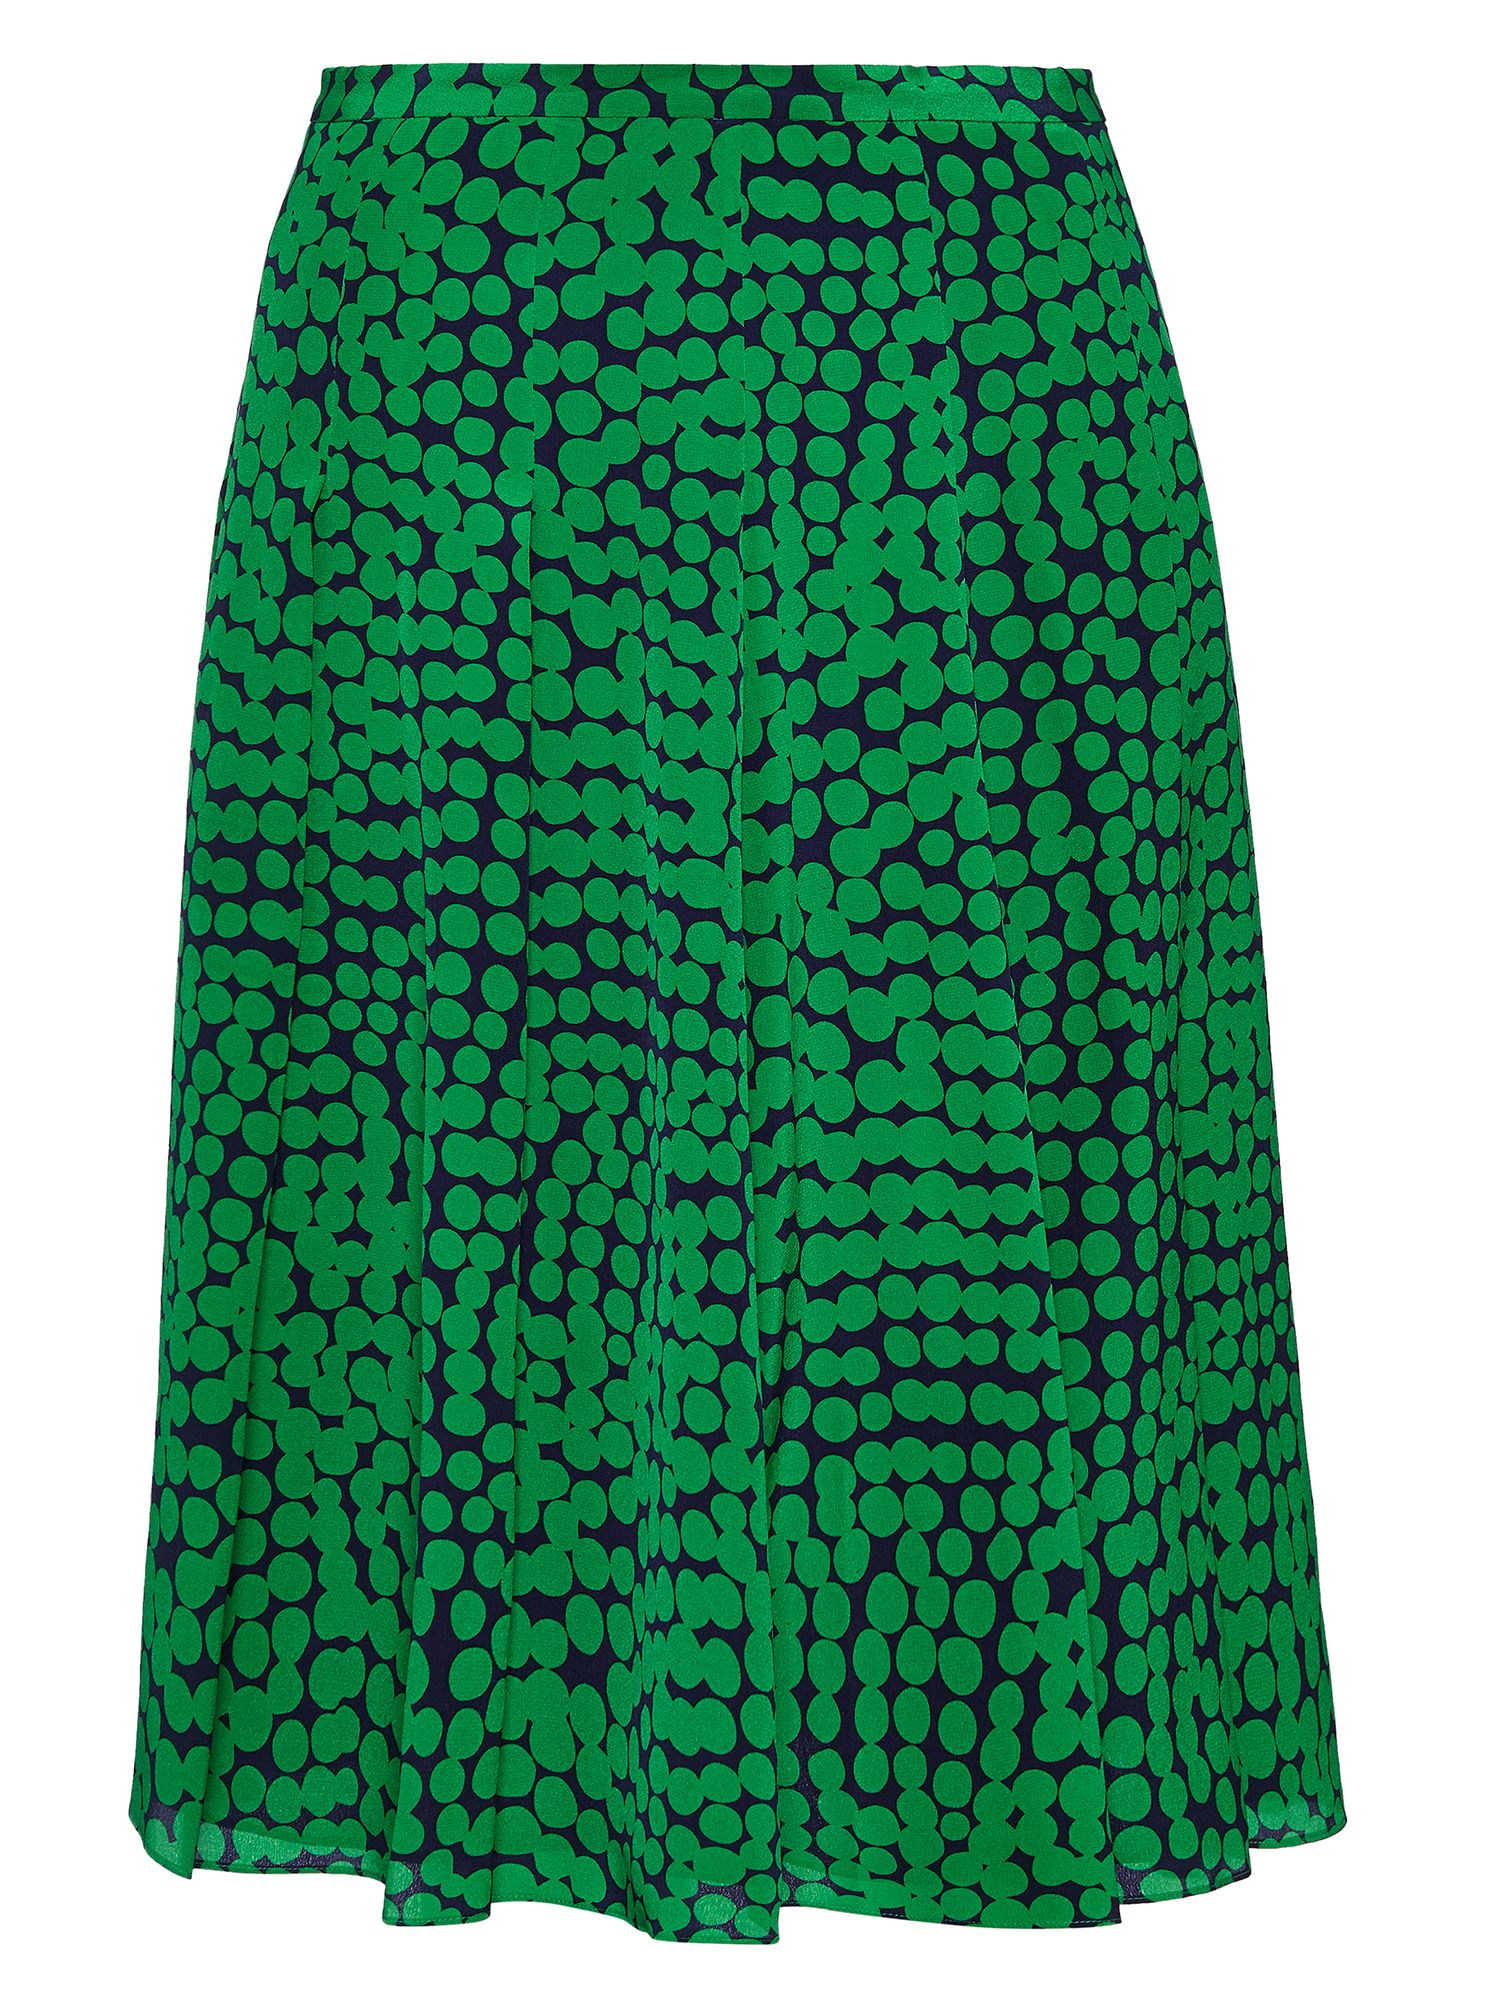 Jaeger: Abstract Spot Pleat Skirt